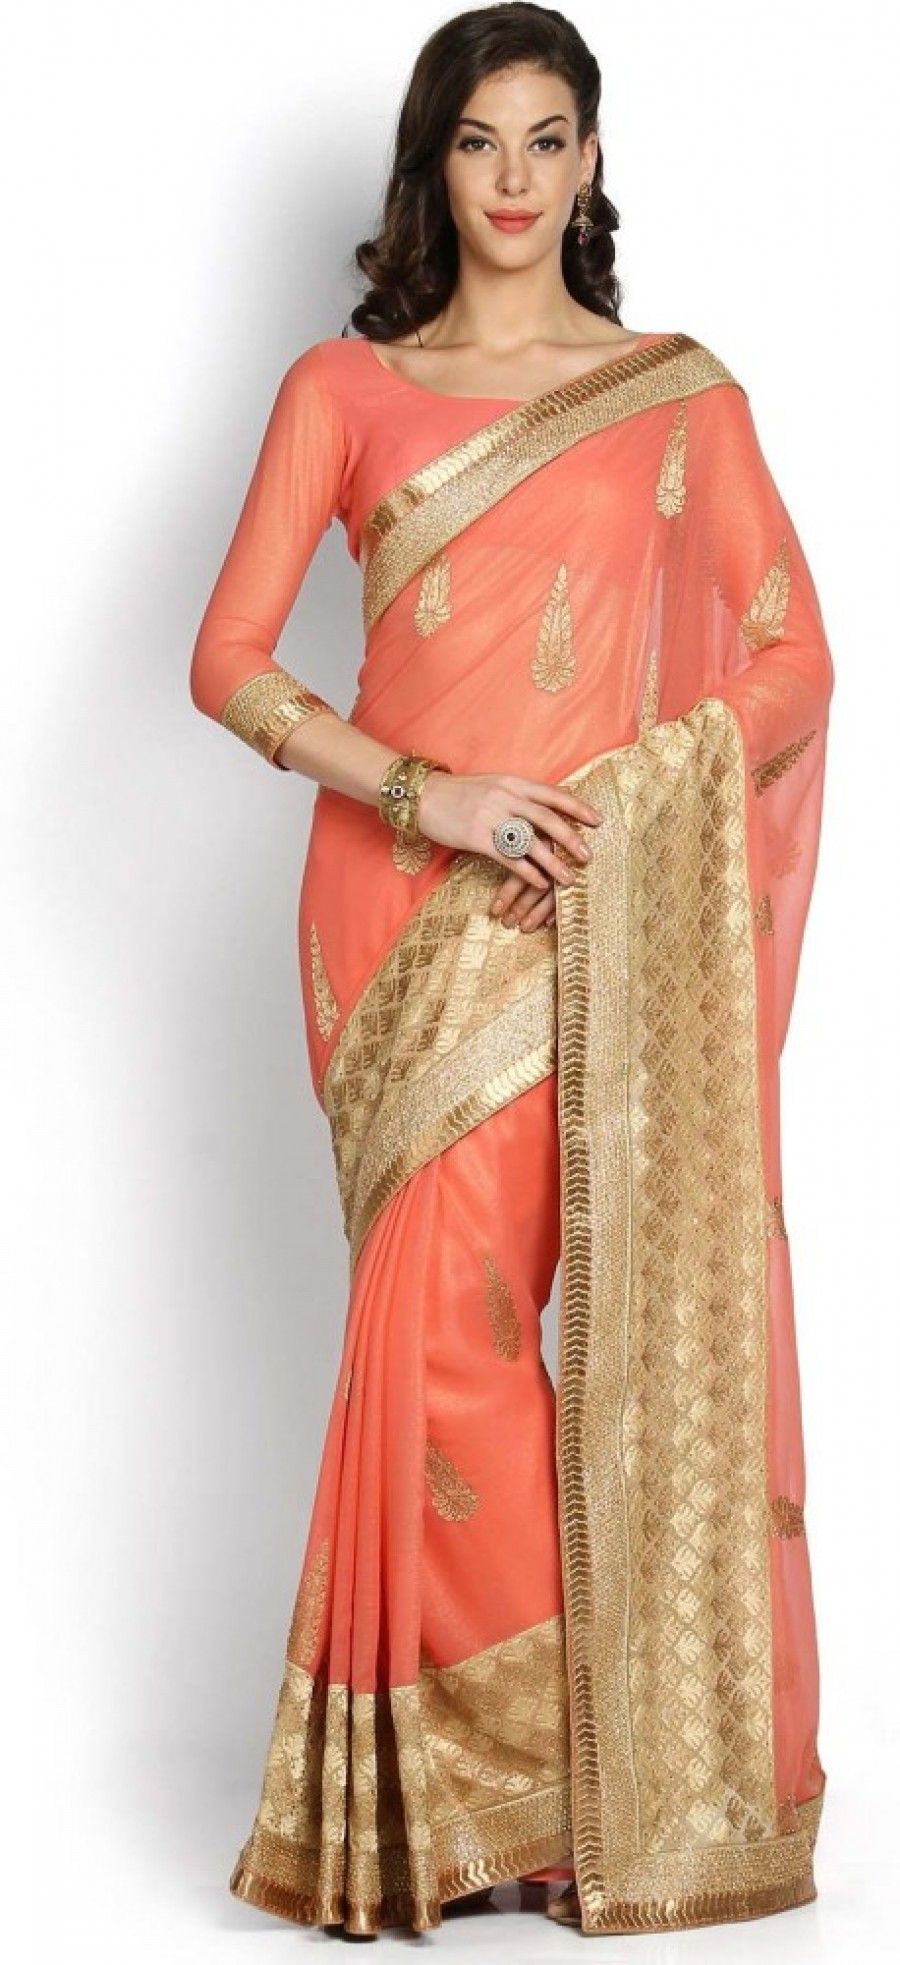 Buy Soch Embriodered Fashion Viscose Sari Online